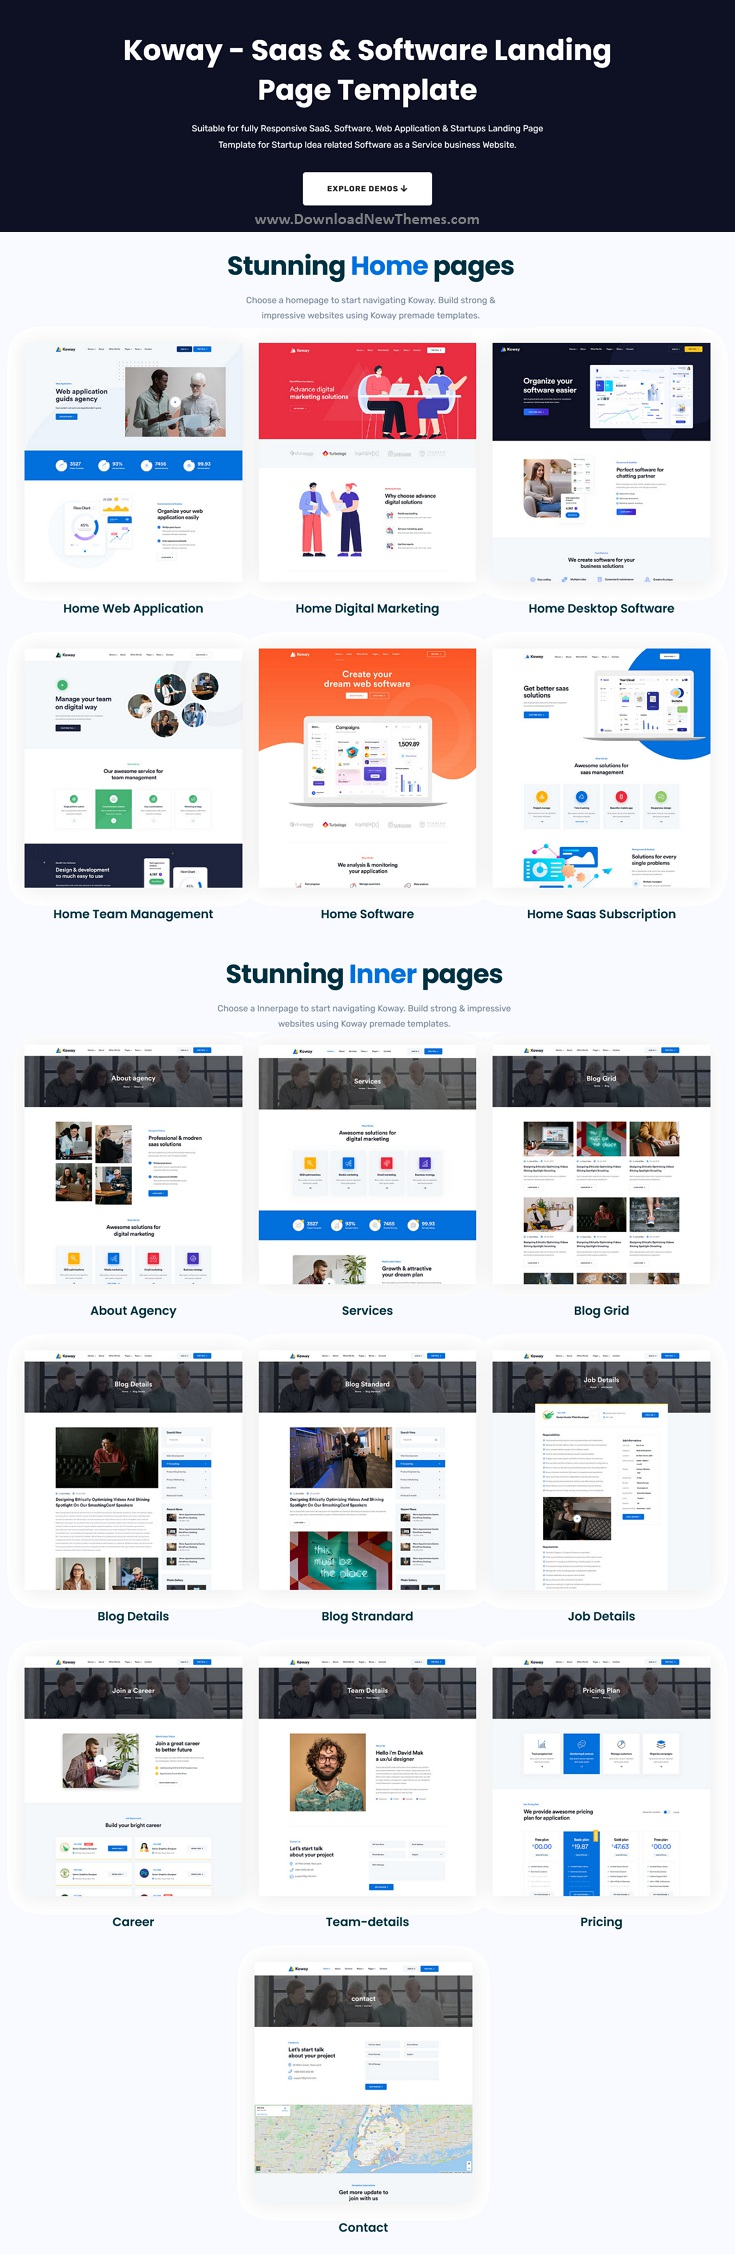 Saas & Software Landing Page Template